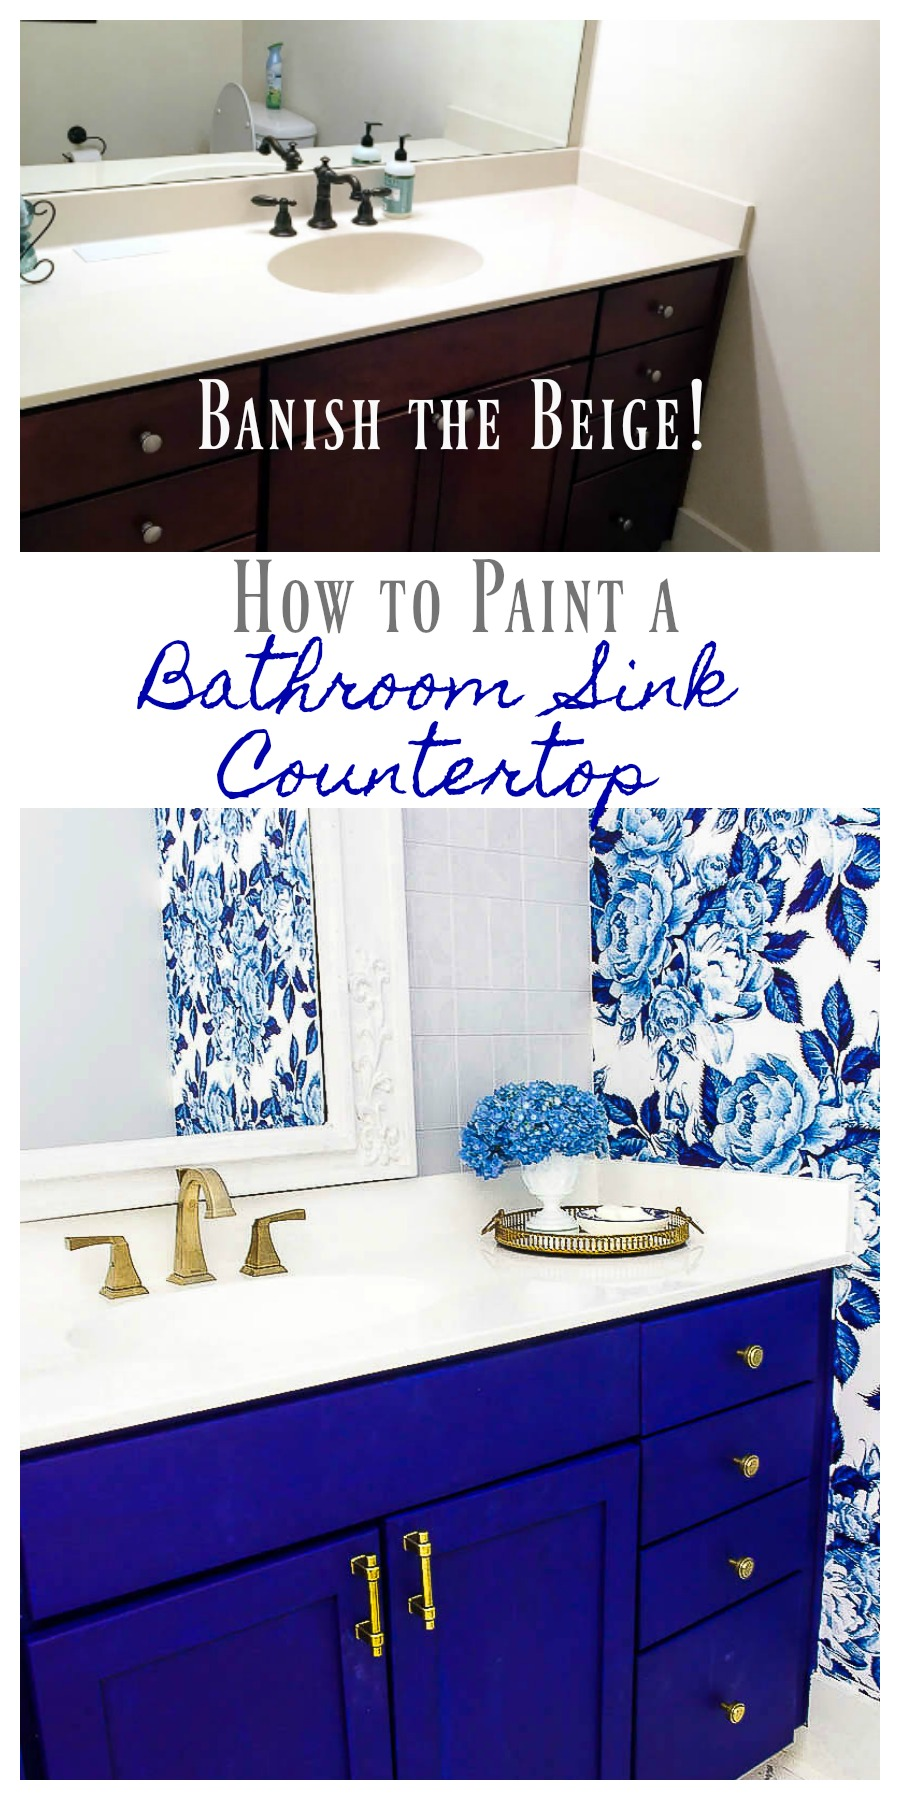 DIY Painted Bathroom Countertop and Sink - 2 Bees in a Pod